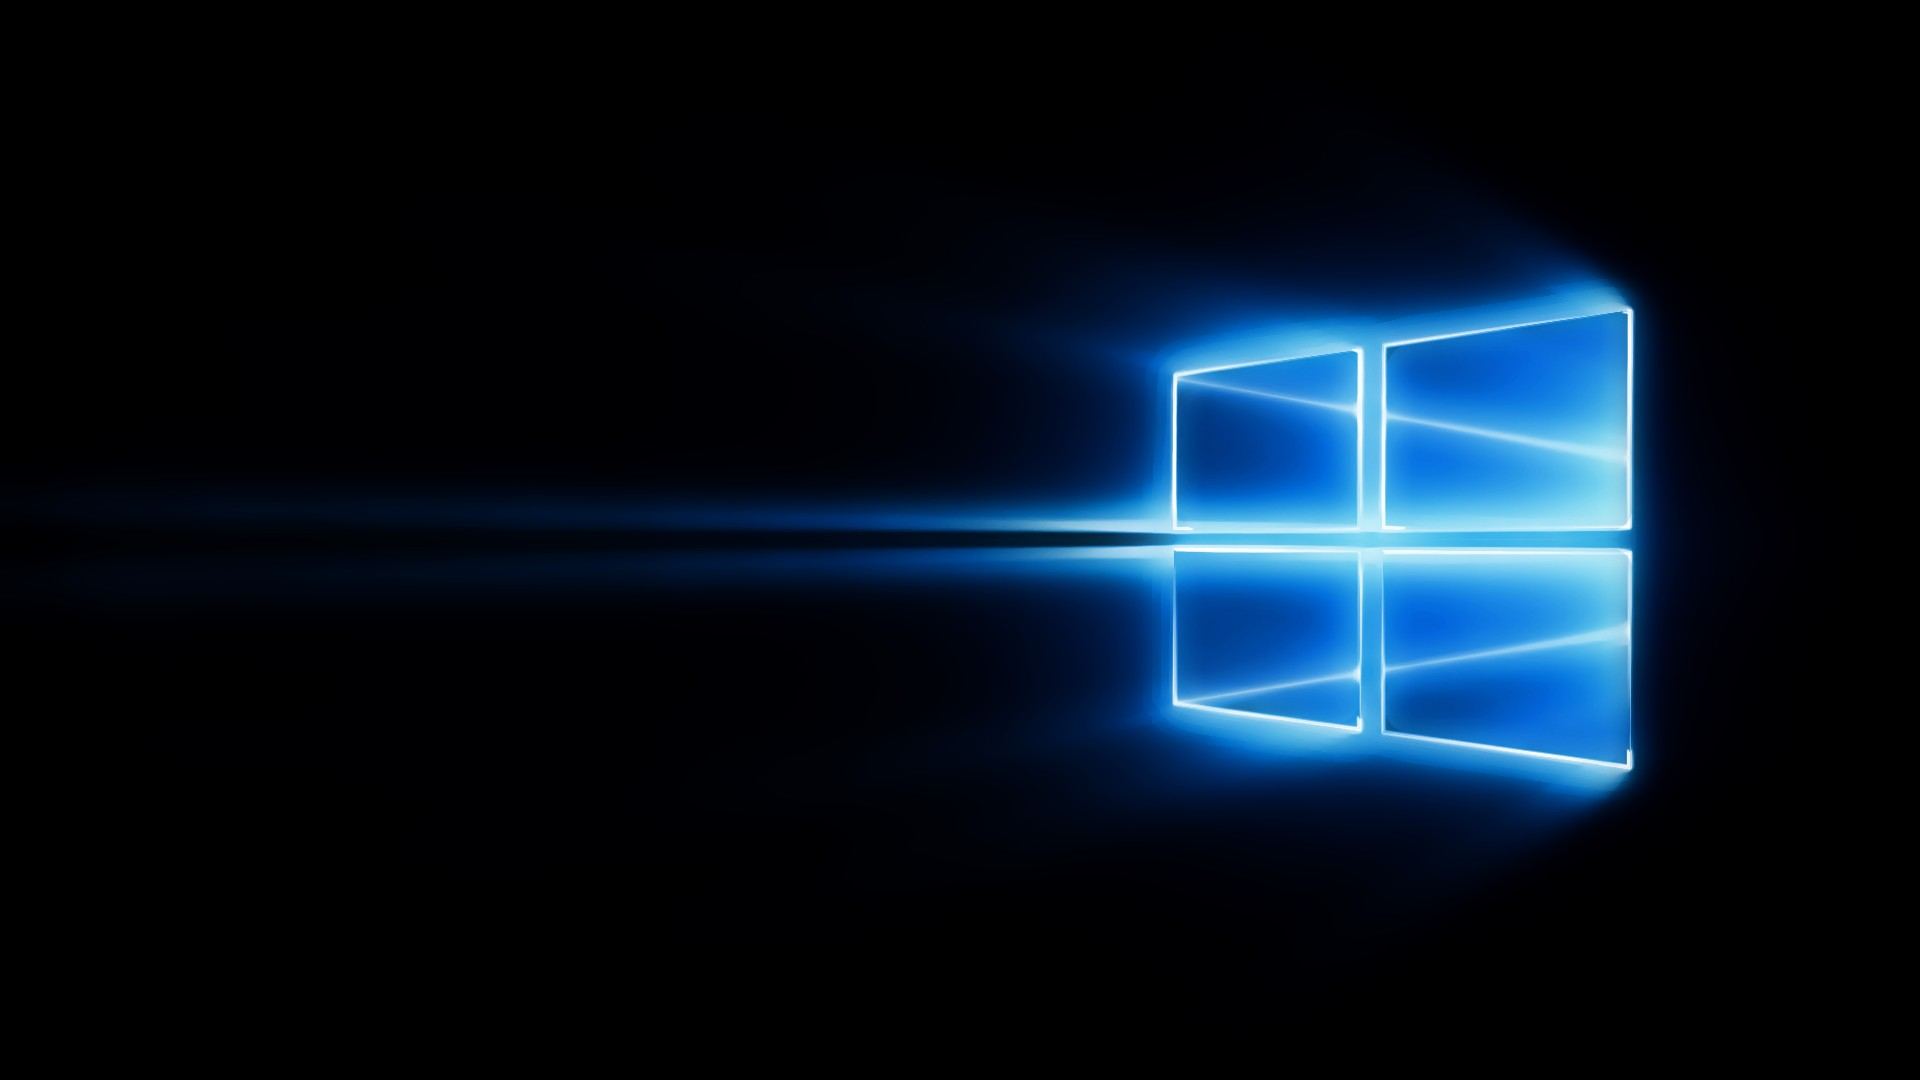 Wallpaper Windows 10 1 Download Free Awesome High Resolution